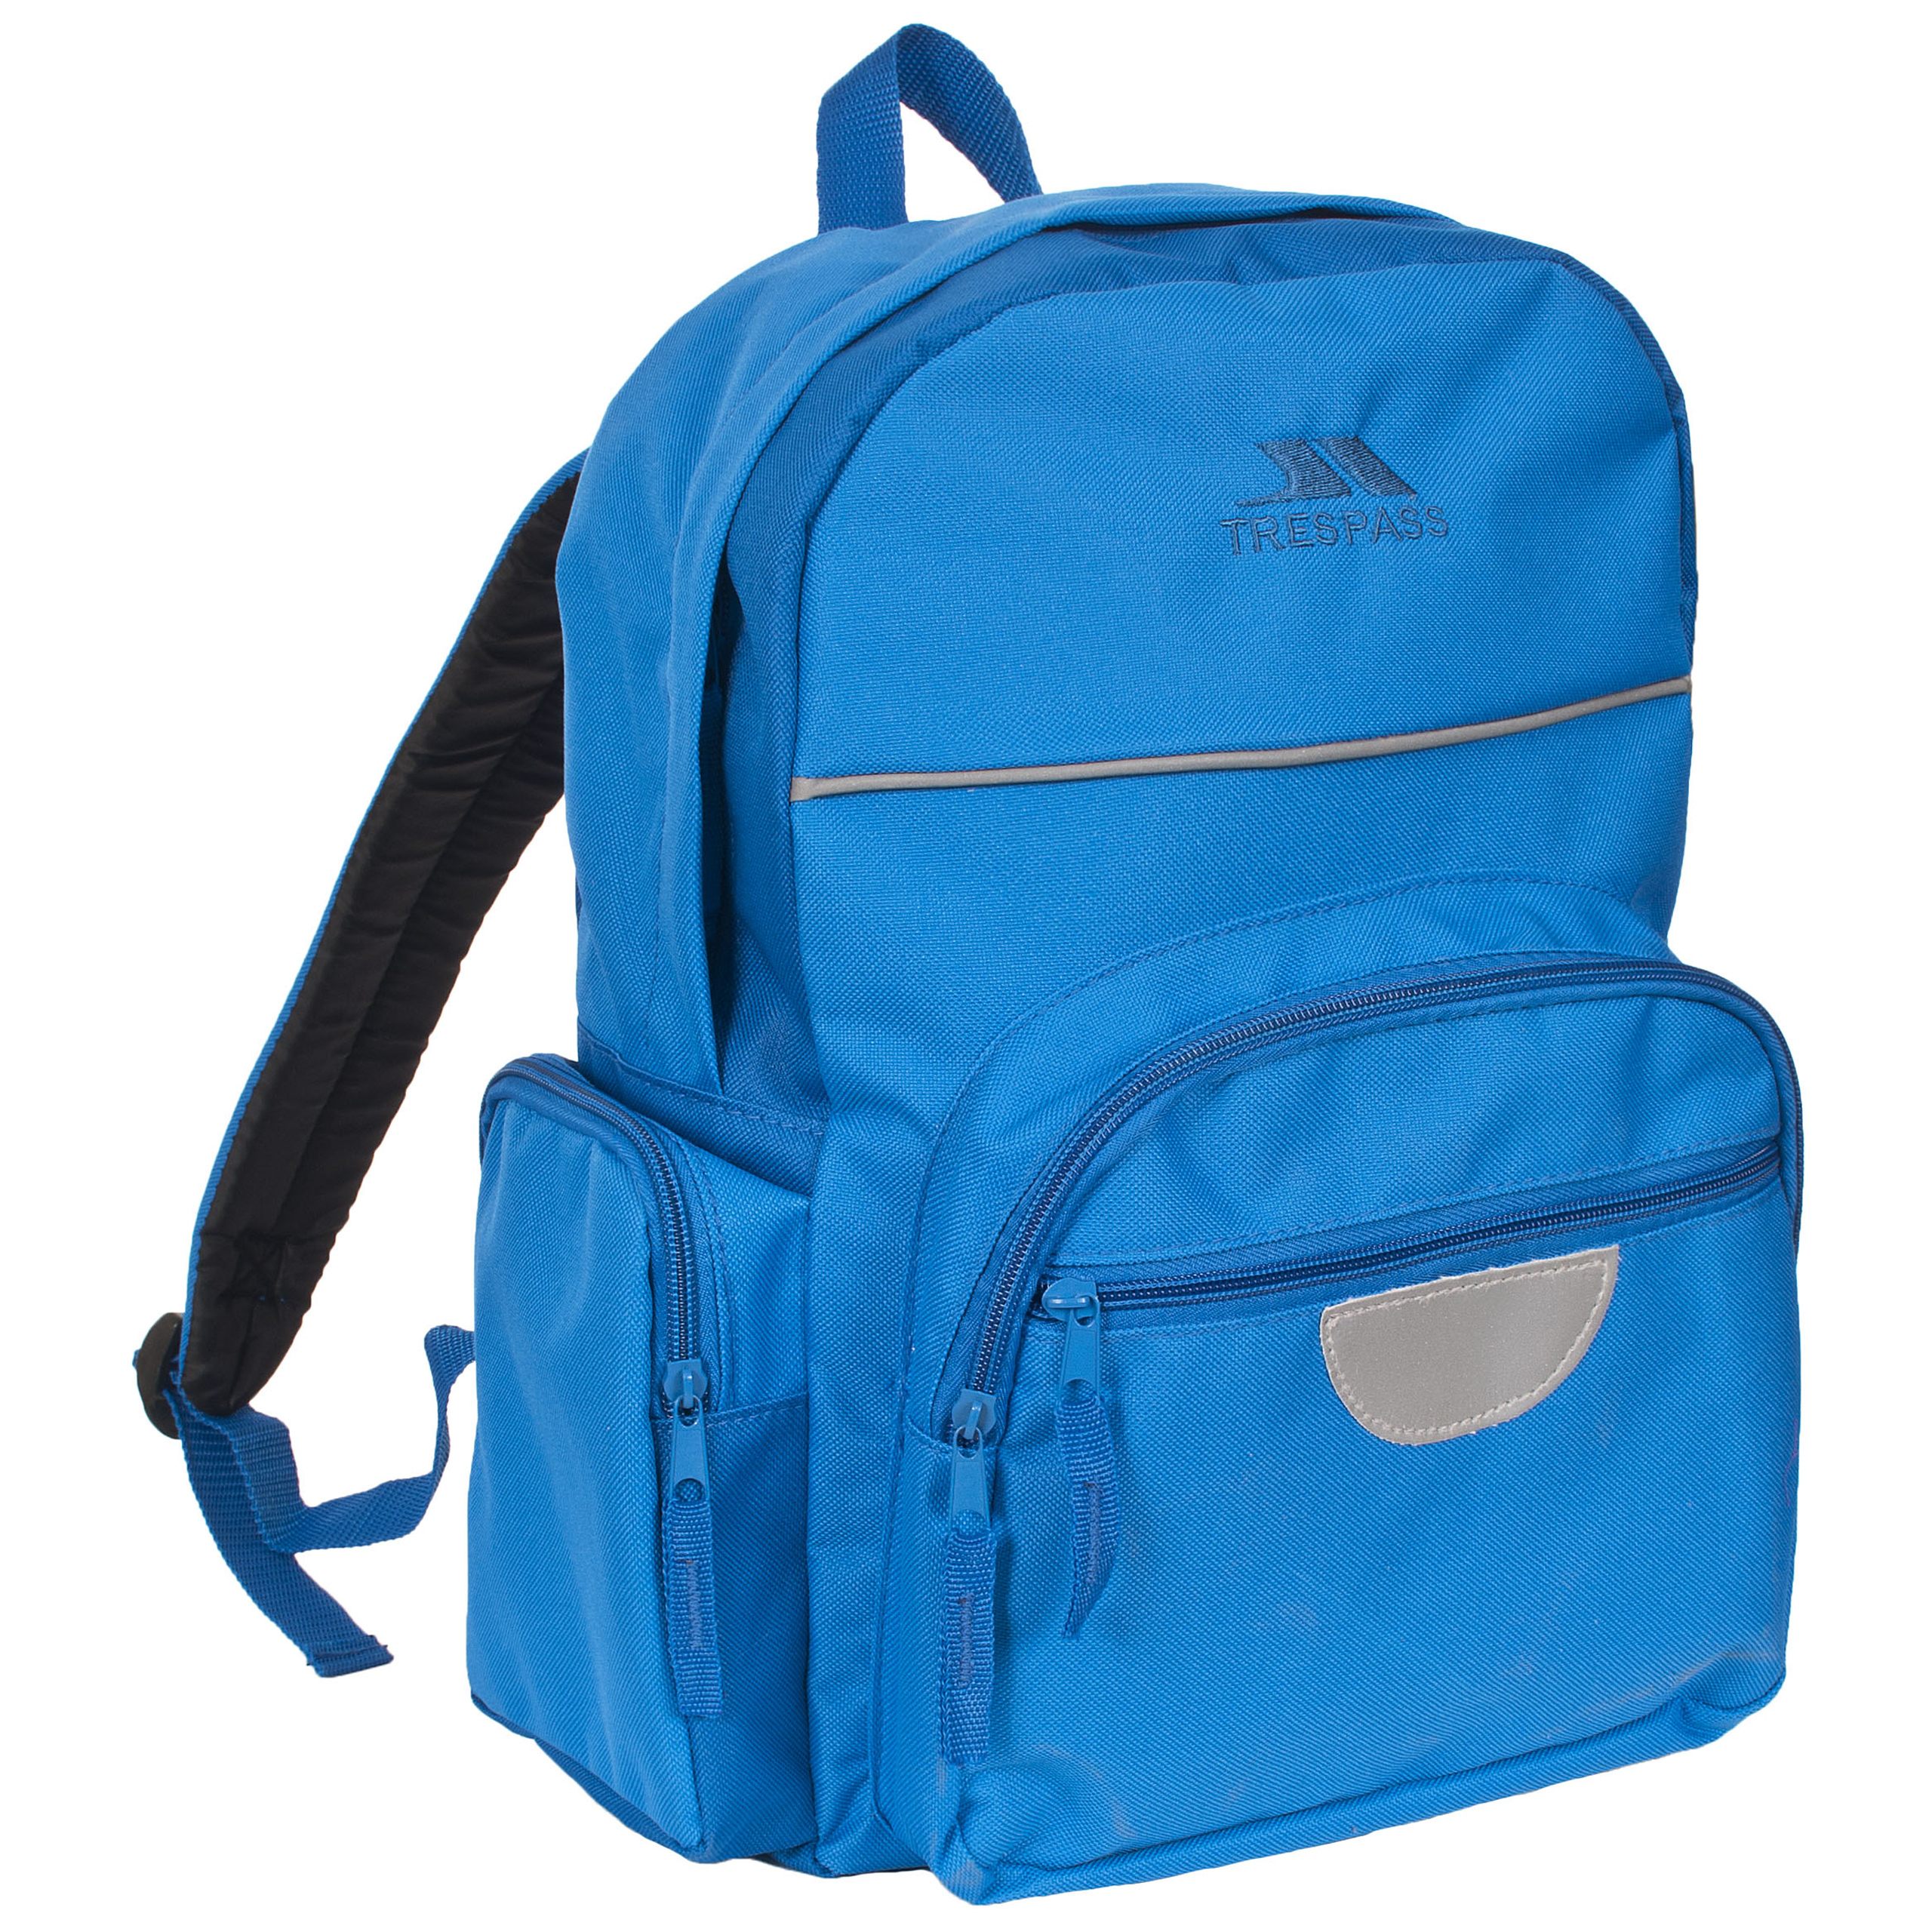 Blue Backpacks For School 3fcGjWr7